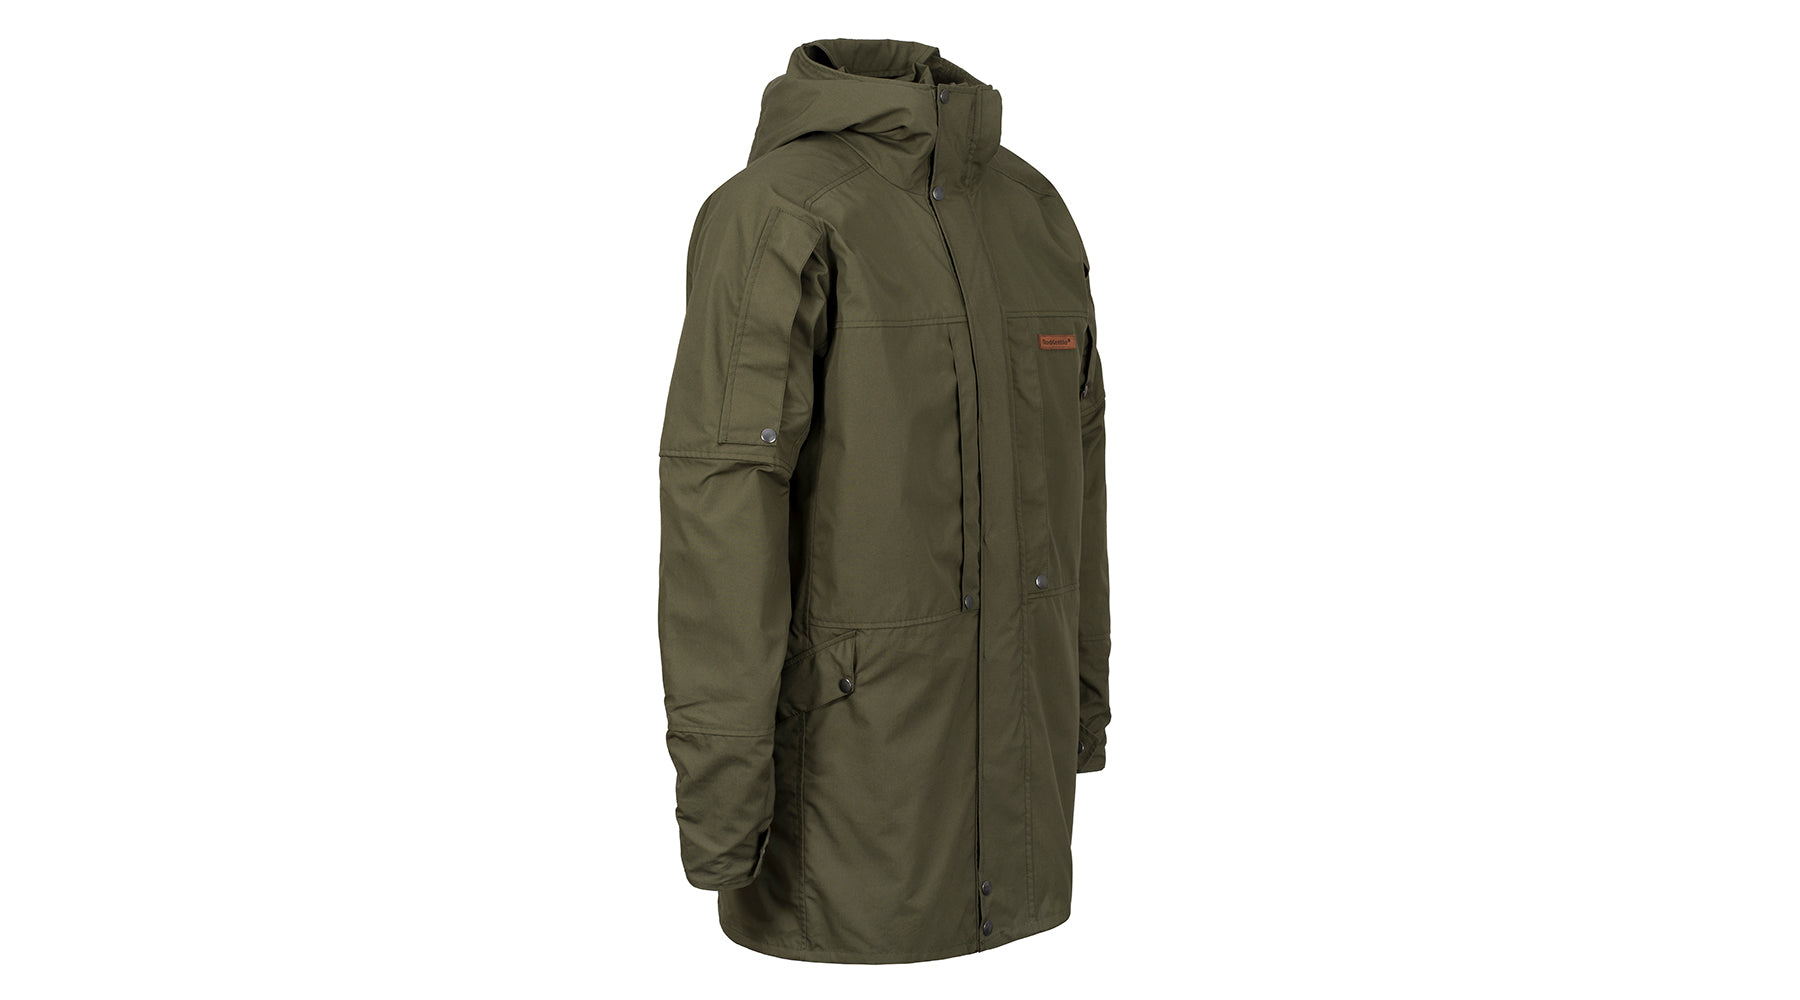 The new Ventile Hunting Parka M16 is available to buy!